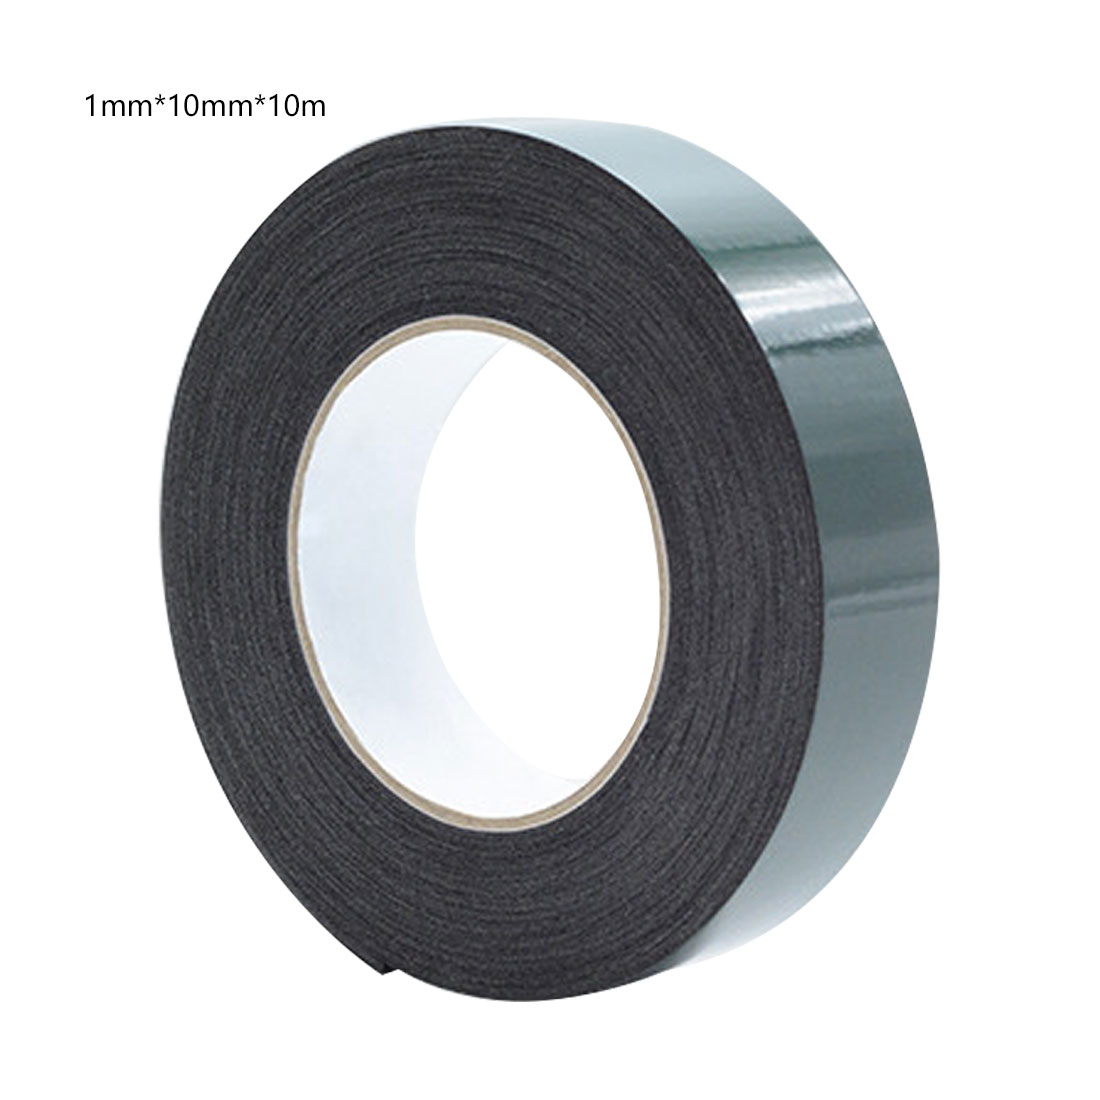 Hot!1 pc 10m Length Strong Adhesive Waterproof Double Sided Tape High quality 10mm width Foam Green Tape Trim home Car 10m super strong waterproof self adhesive double sided foam tape for car trim scotch